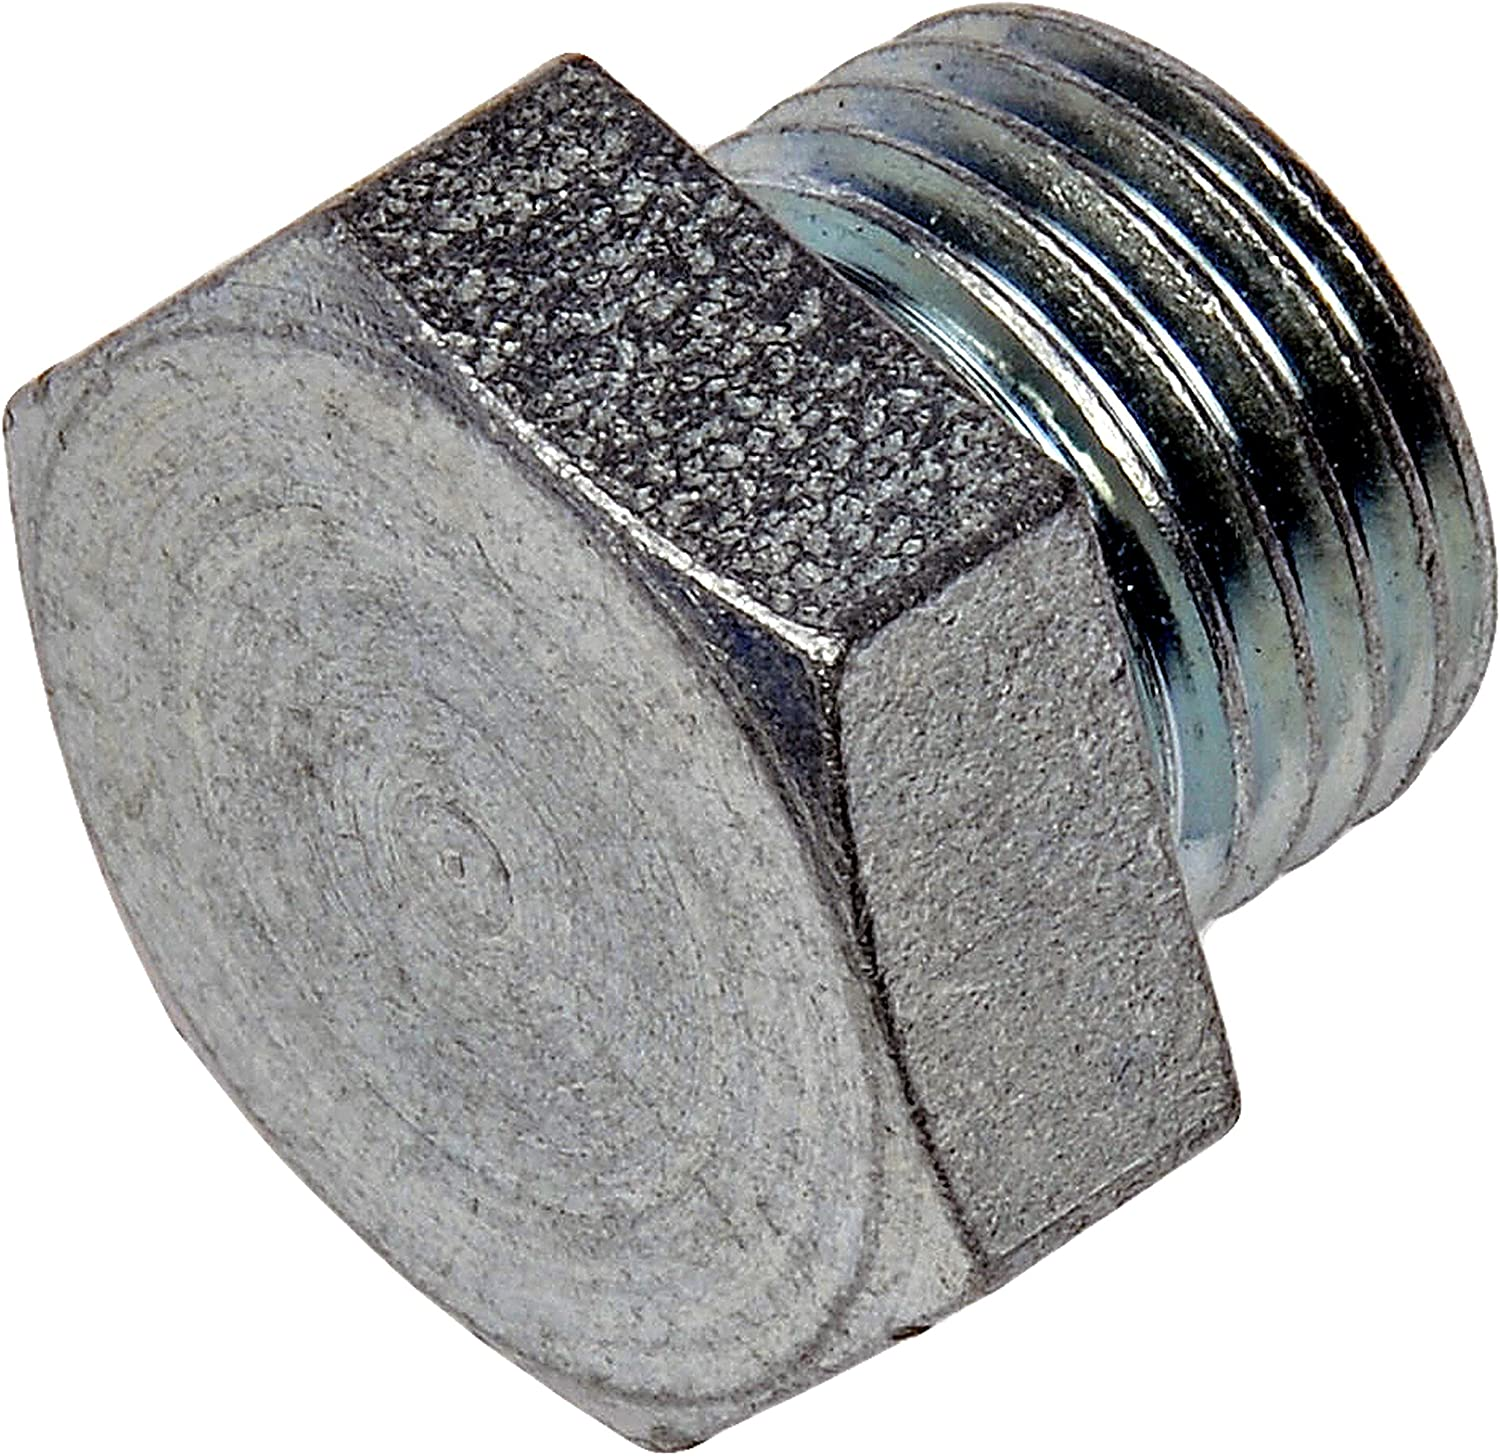 Dorman 090-030 AutoGrade Oil Drain Plug